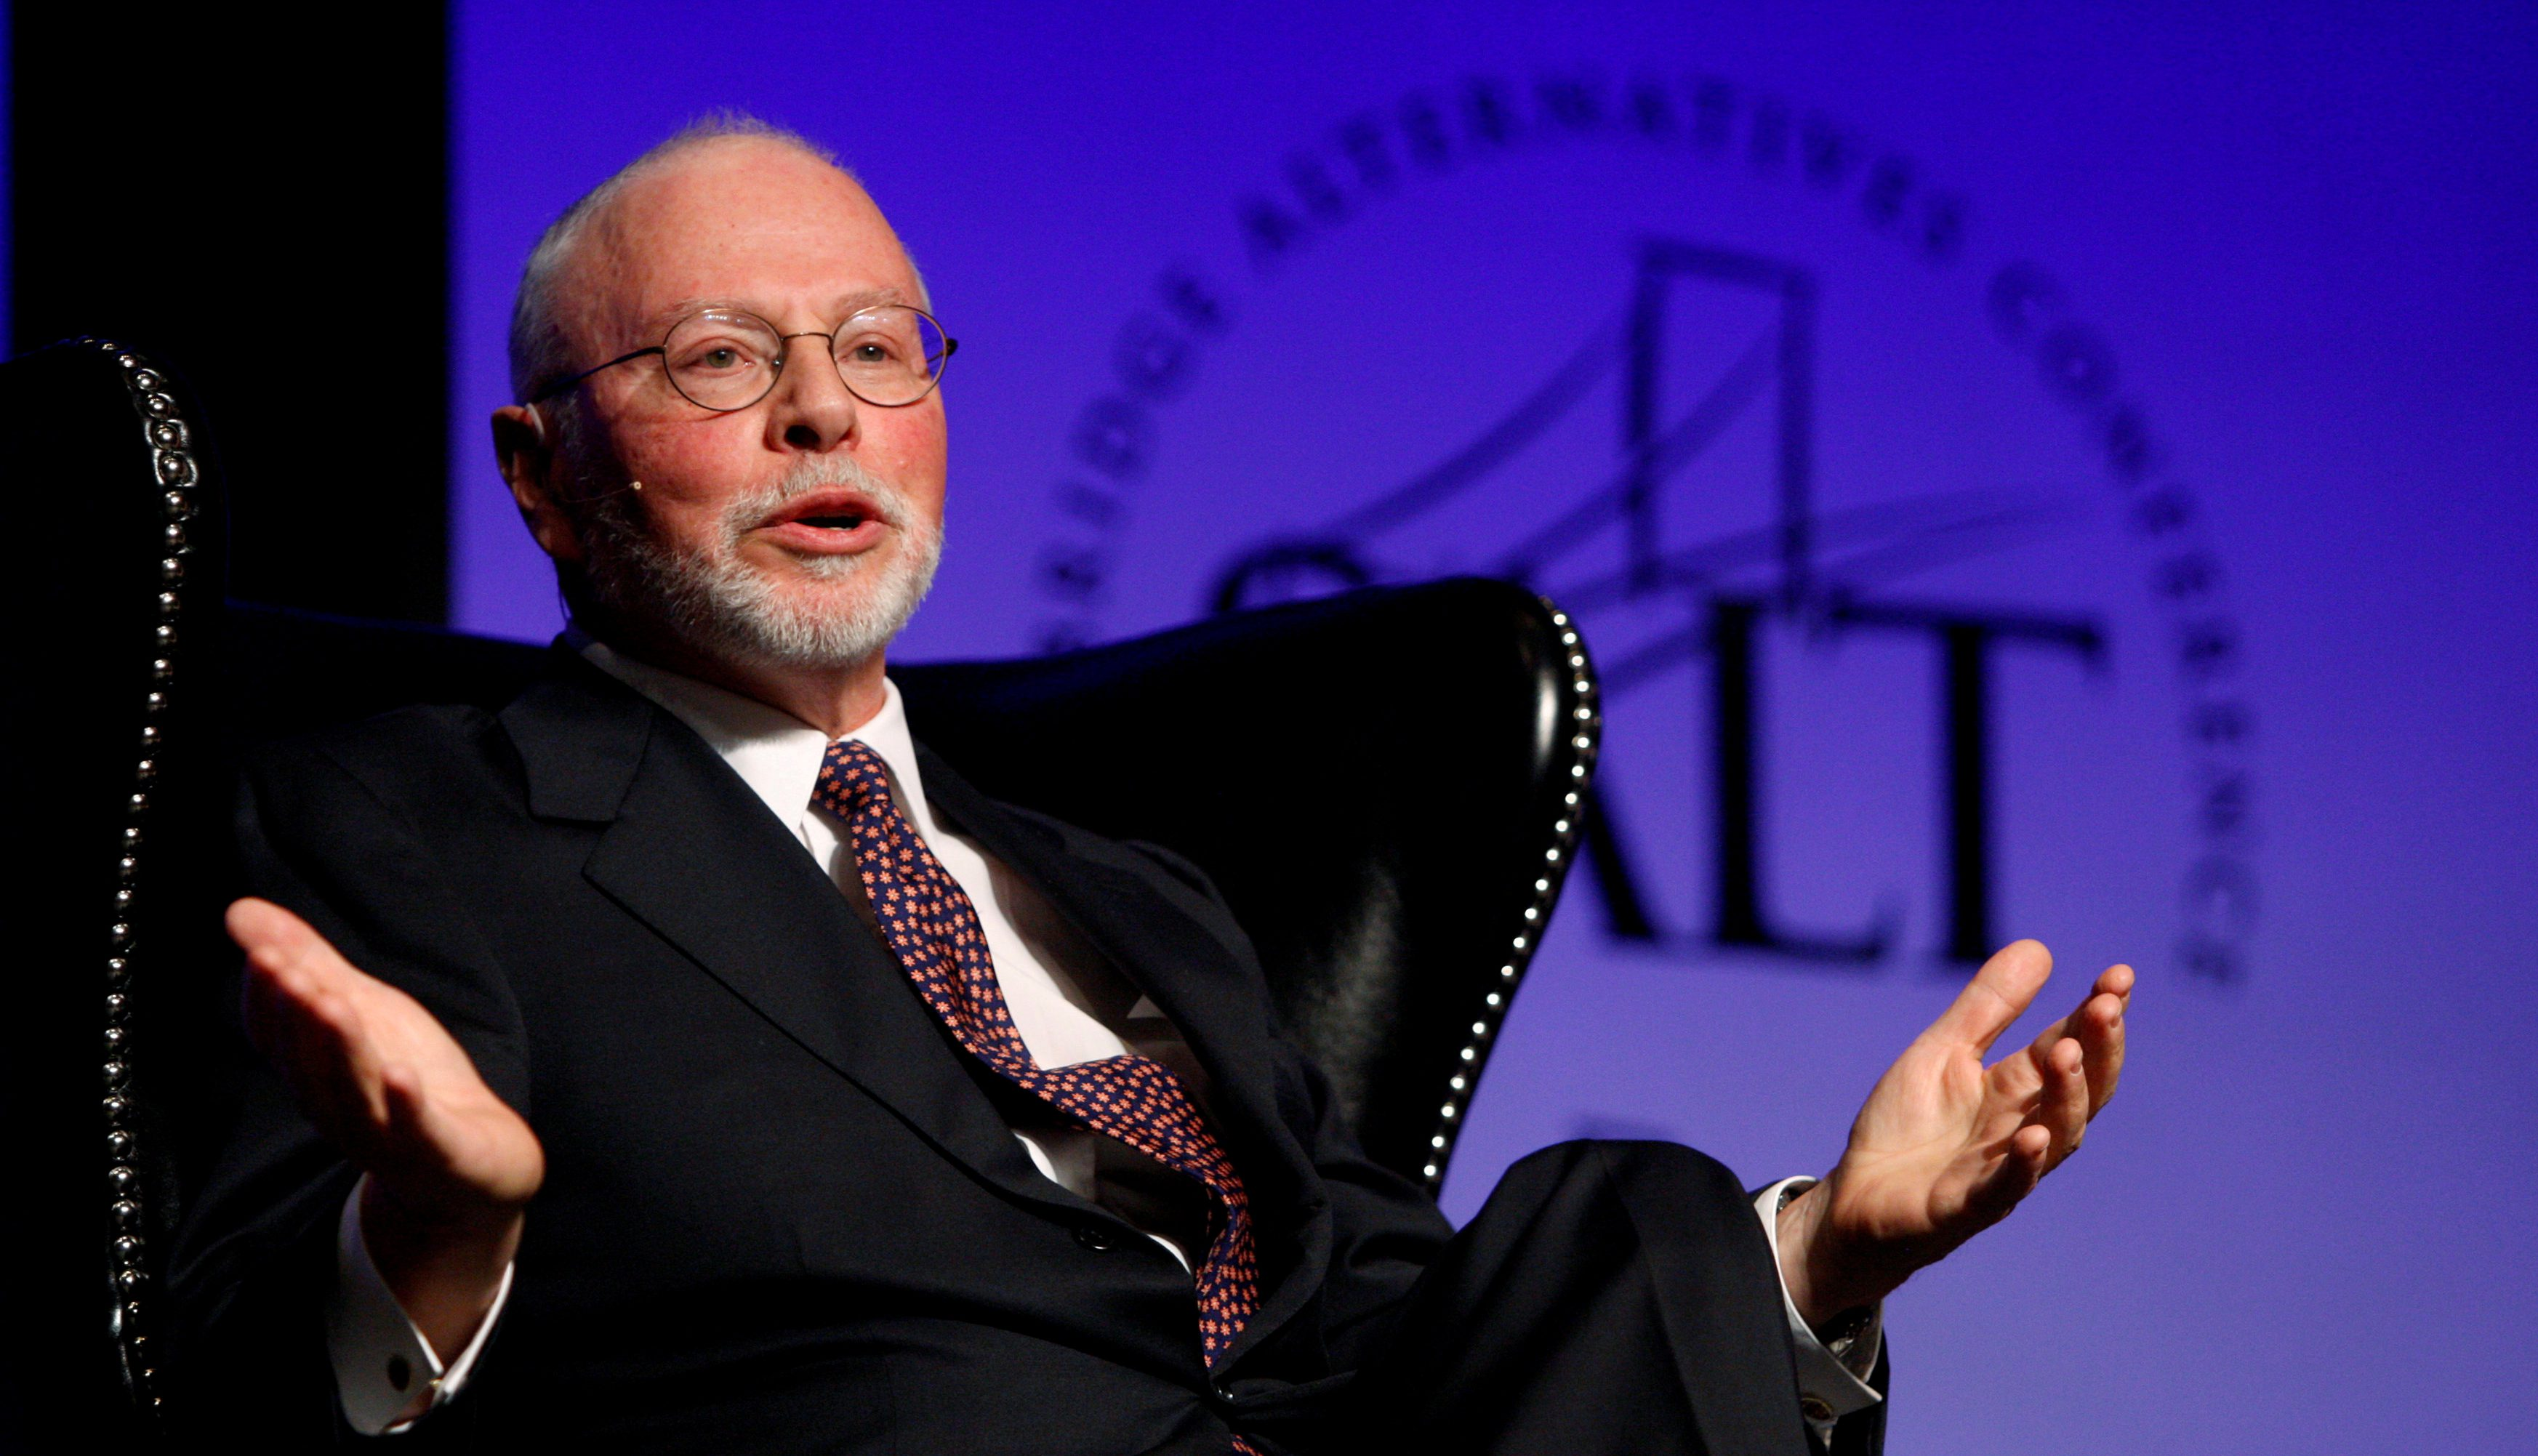 Paul Singer, founder, CEO, and co-chief investment officer for Elliott Management Corporation, speaks during the Skybridge Alternatives (SALT) Conference in Las Vegas, Nevada May, 9, 2012.